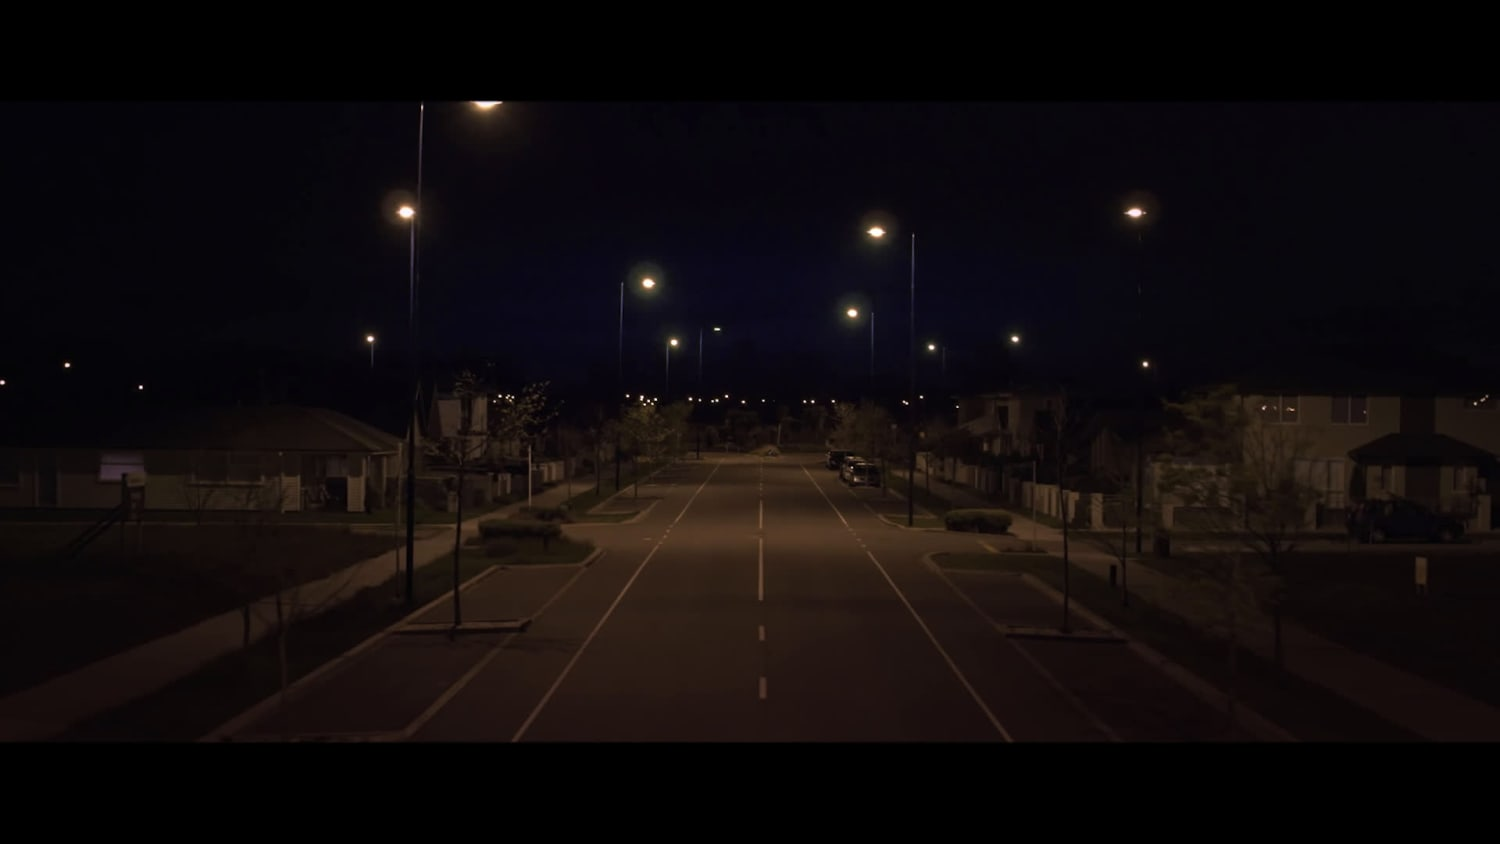 Night scene of a empty residential road with street lights on.